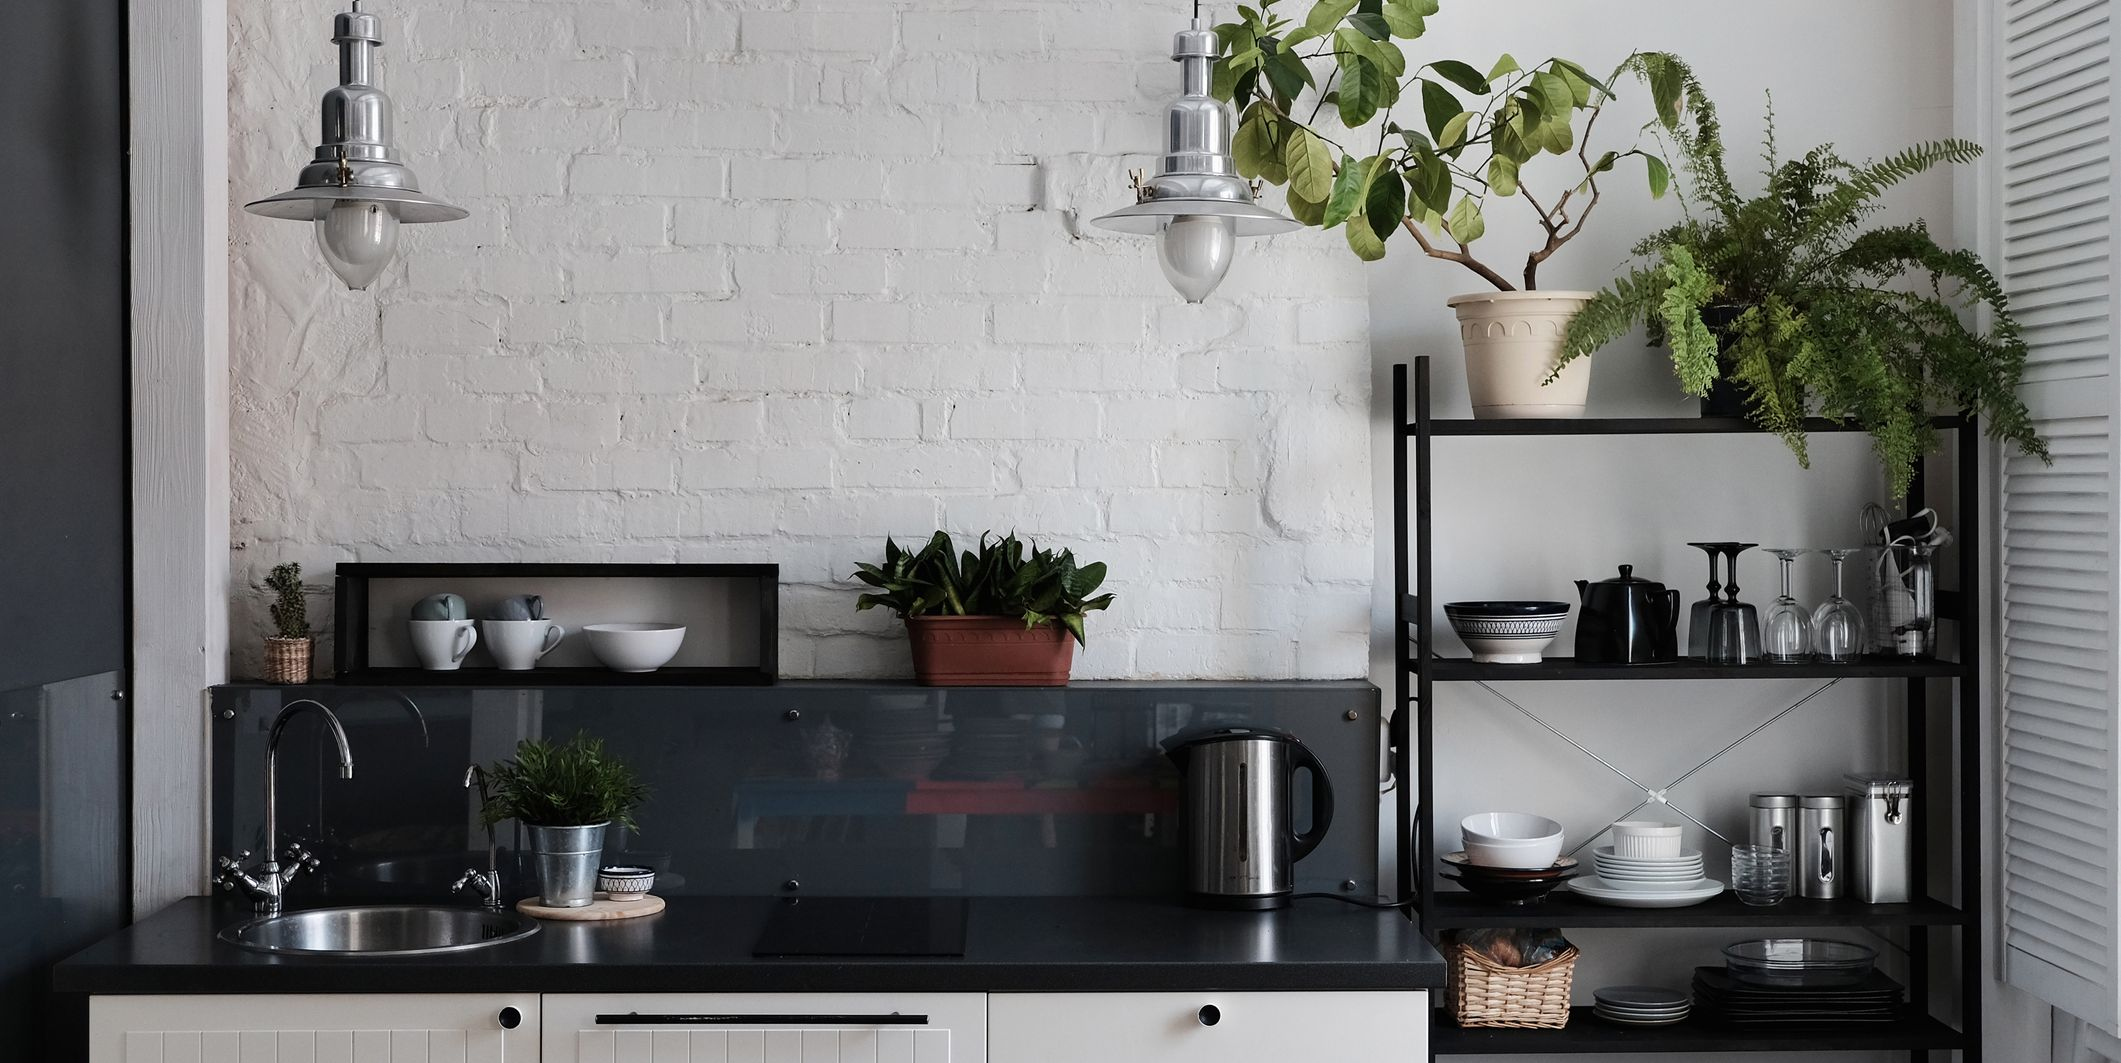 THE BEST PLANT TO BUY FOR EVERY ROOM IN YOUR HOME